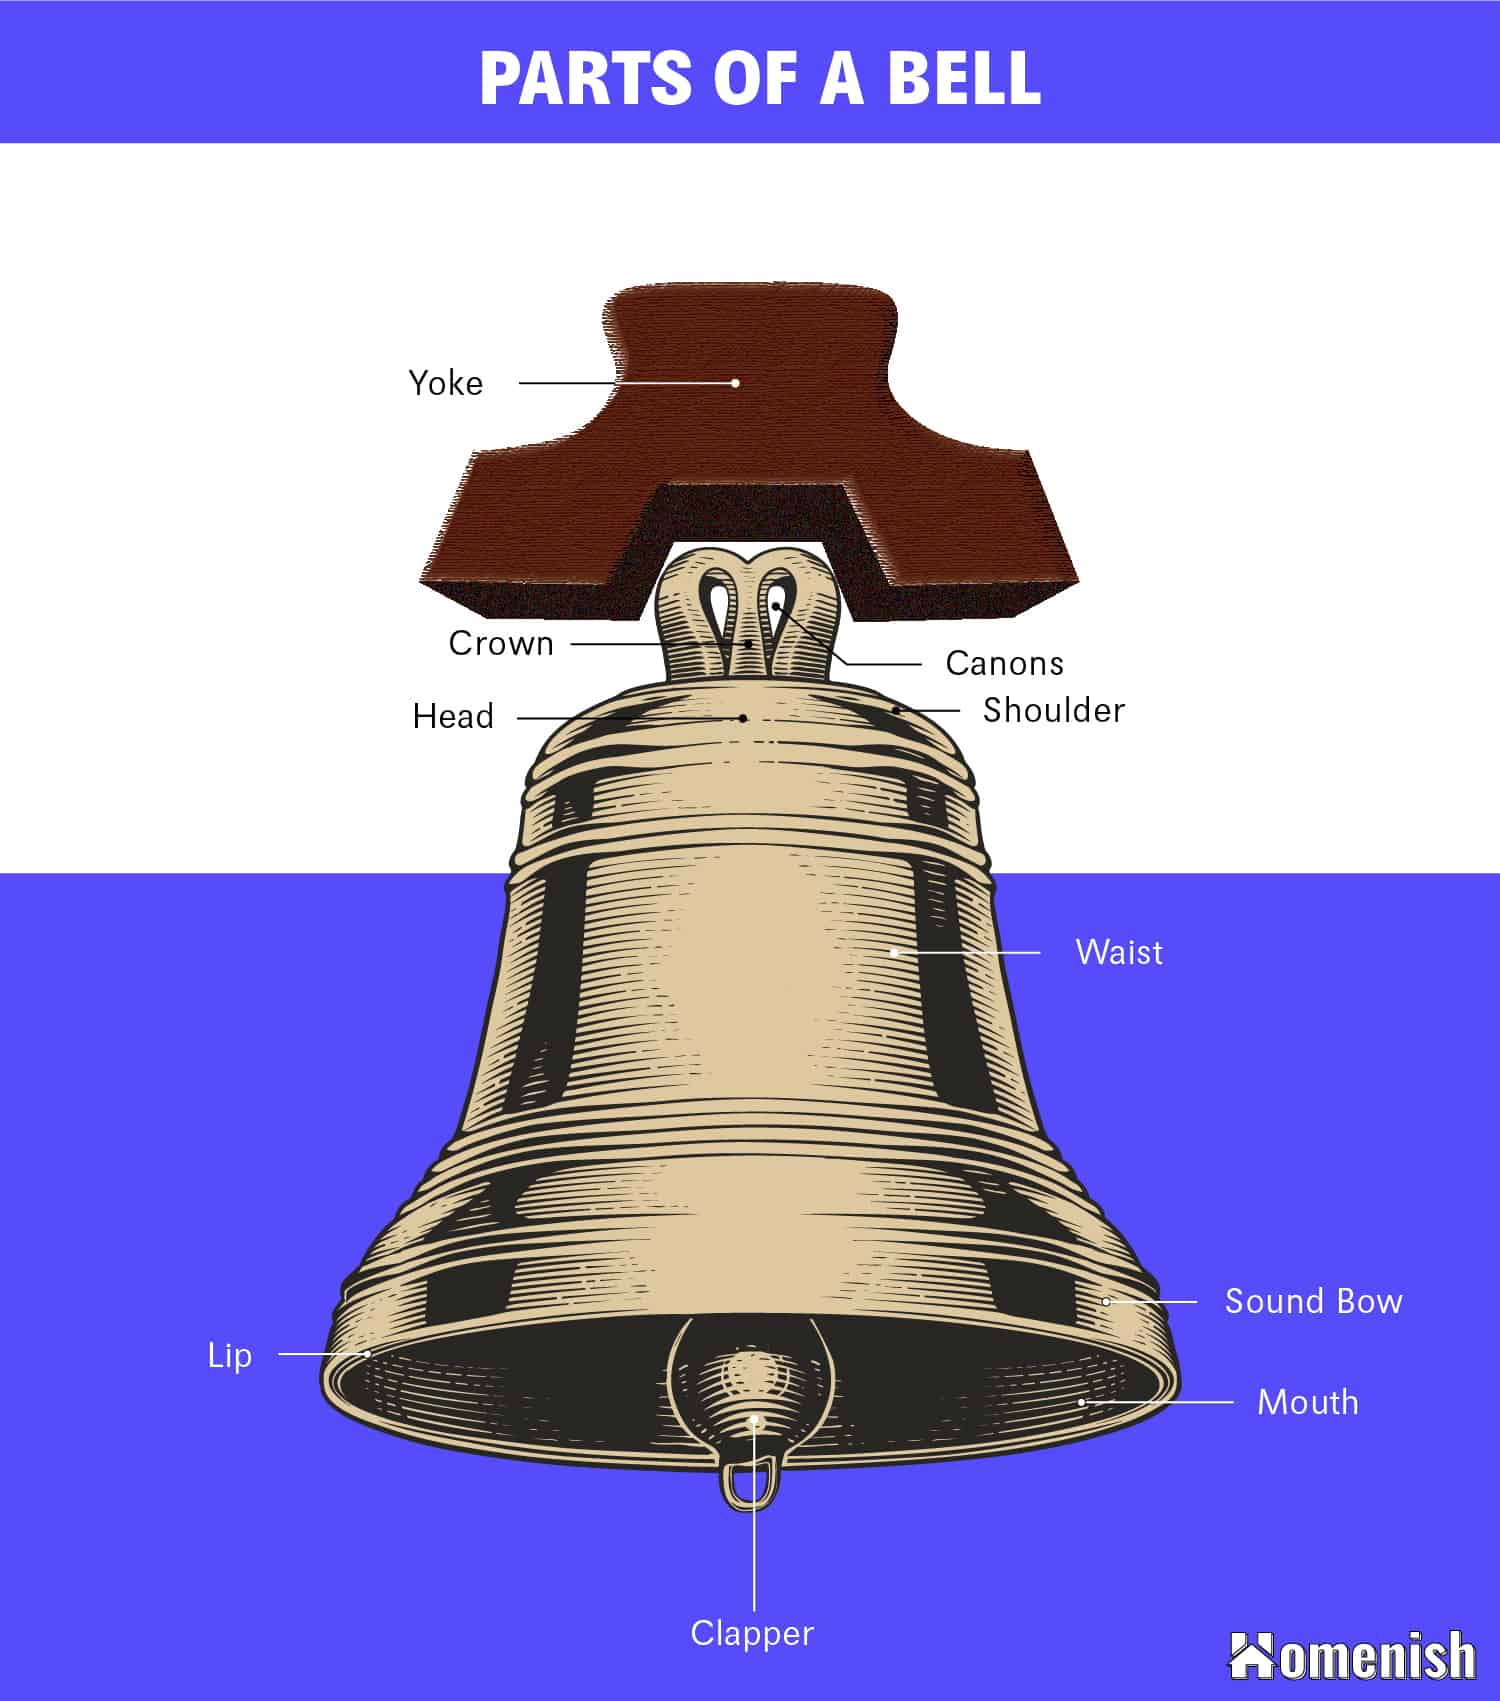 Parts of a Bell Diagram